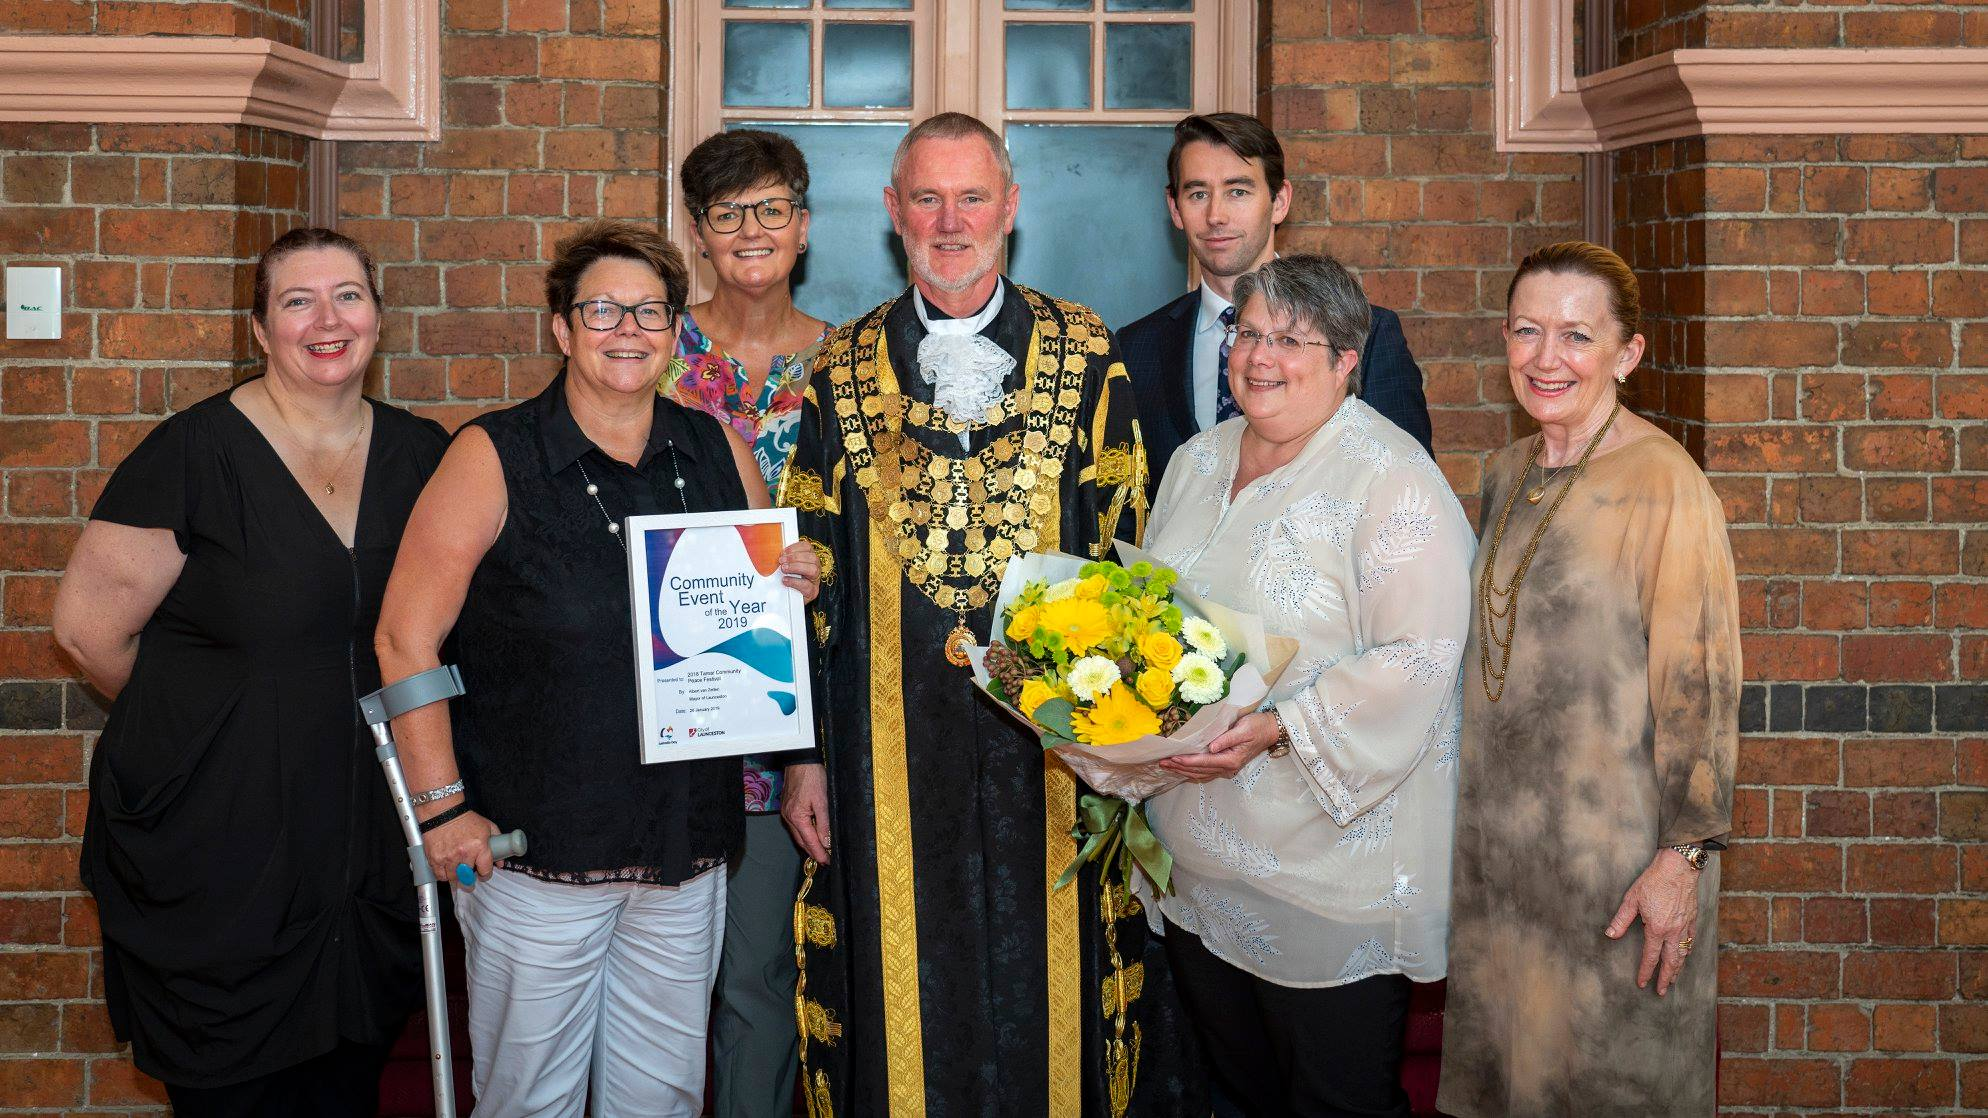 2018 Peace Festival was awarded Community Event of the Year by City of Launceston Mayor, Albert van Zetten. Thanks to all Trustees and the dozens of community groups and individuals who support the Festival. The Trust, under the stewardship of Trustees (Right to left) Tamara Foster, Donna Bain (Chair), Mark Baker, Josephine Archer, Janine Healey (Trust Treasurer). This image also includes Festival co-ordinator Sonja Hindrum and Launceston Mayor, Albert van Zetten. (Image by The Examiner Newspaper)